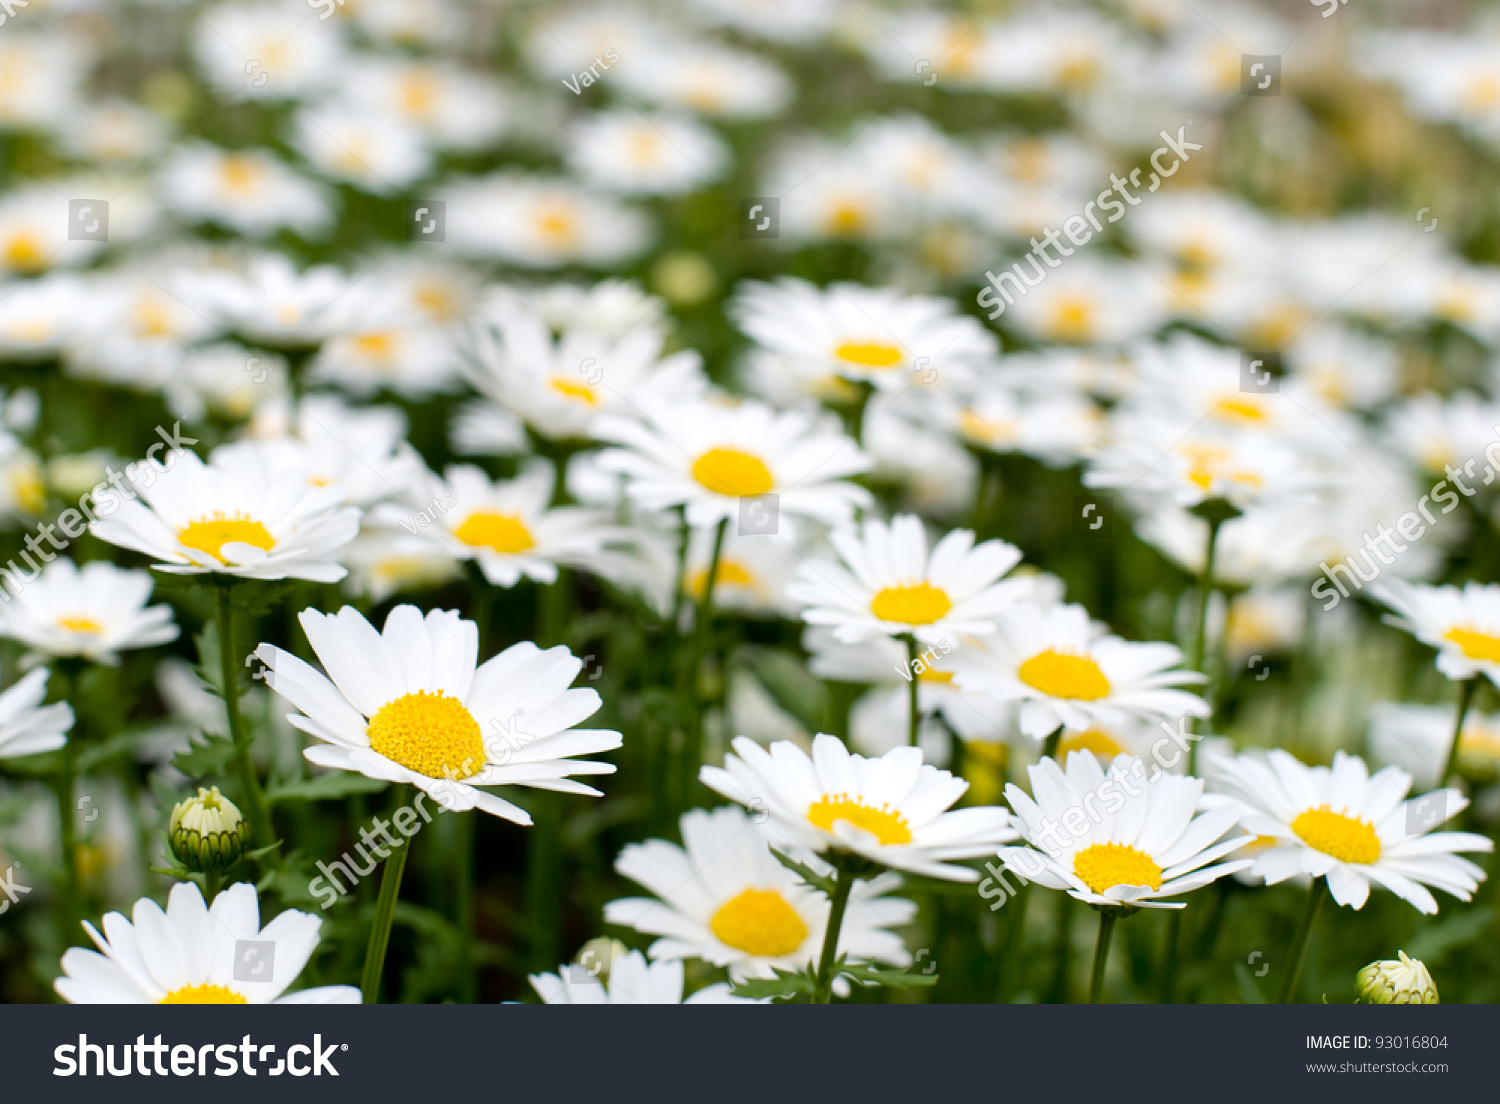 Swamp Chrysanthemum Flower Blooming All Over The Field Ez Canvas